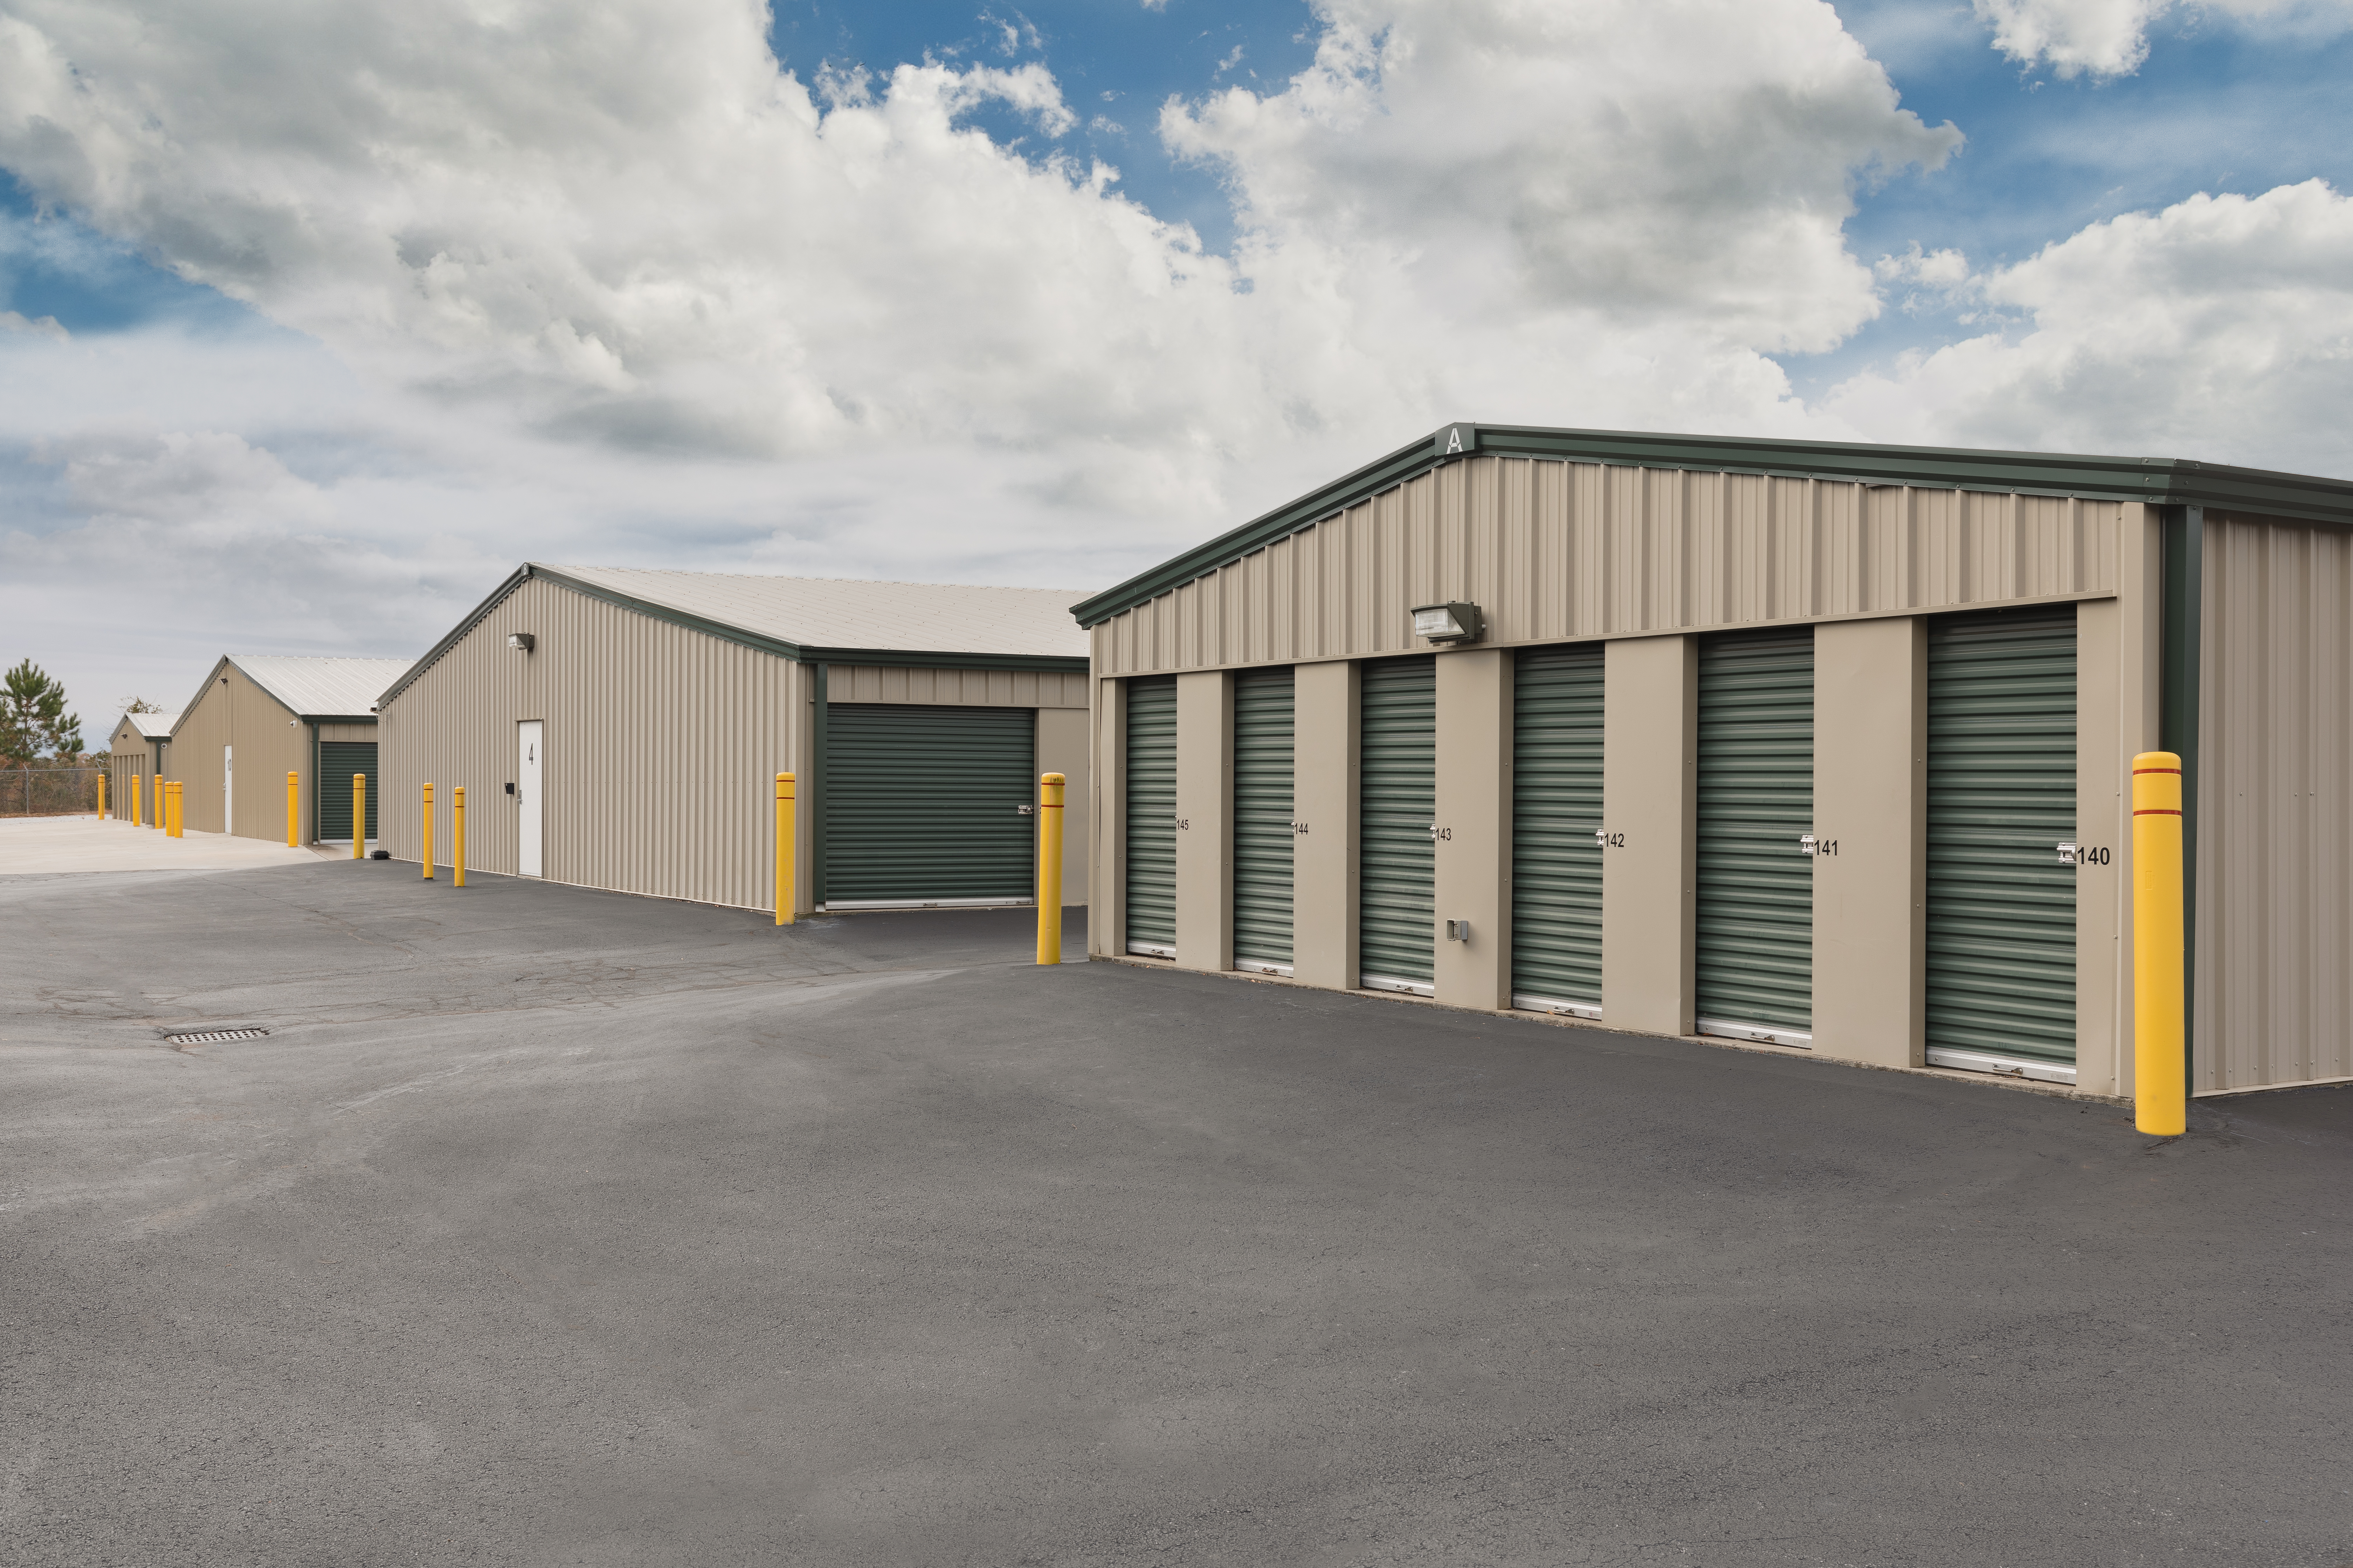 Two storage buildings with large exterior access doors